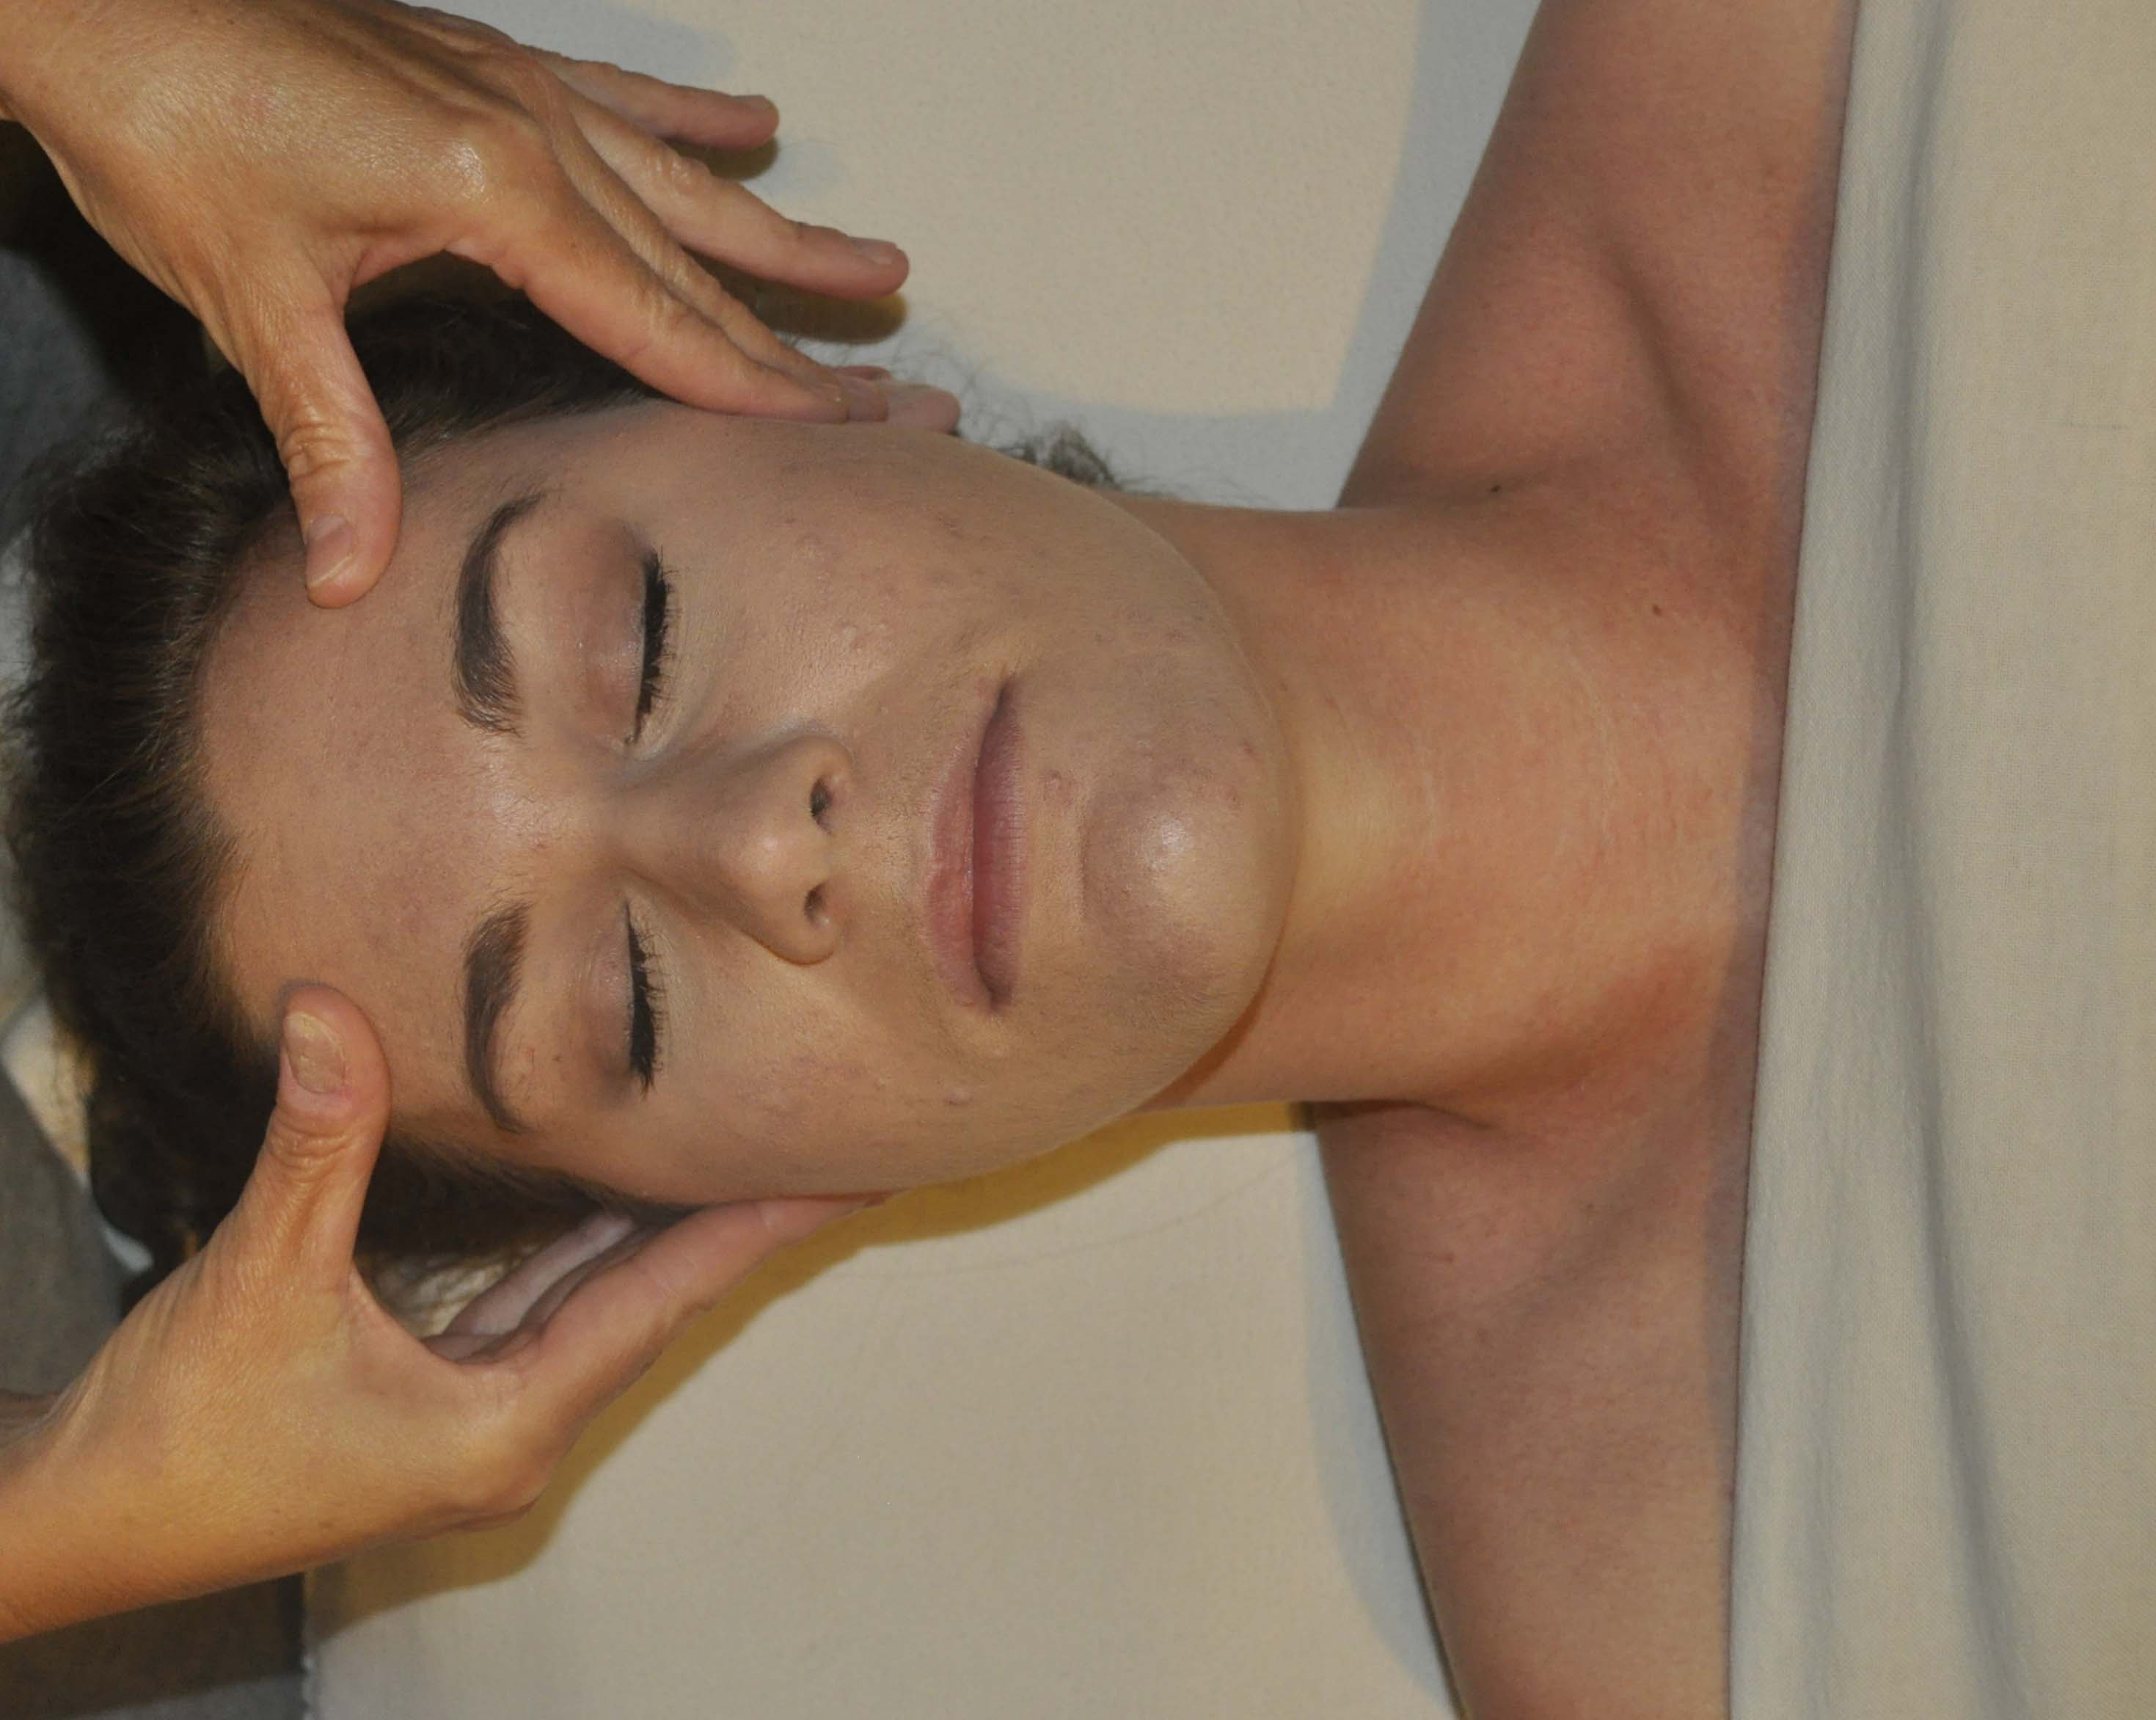 Massage classes that teach you how to help relieve pain, stress, tension and trauma.